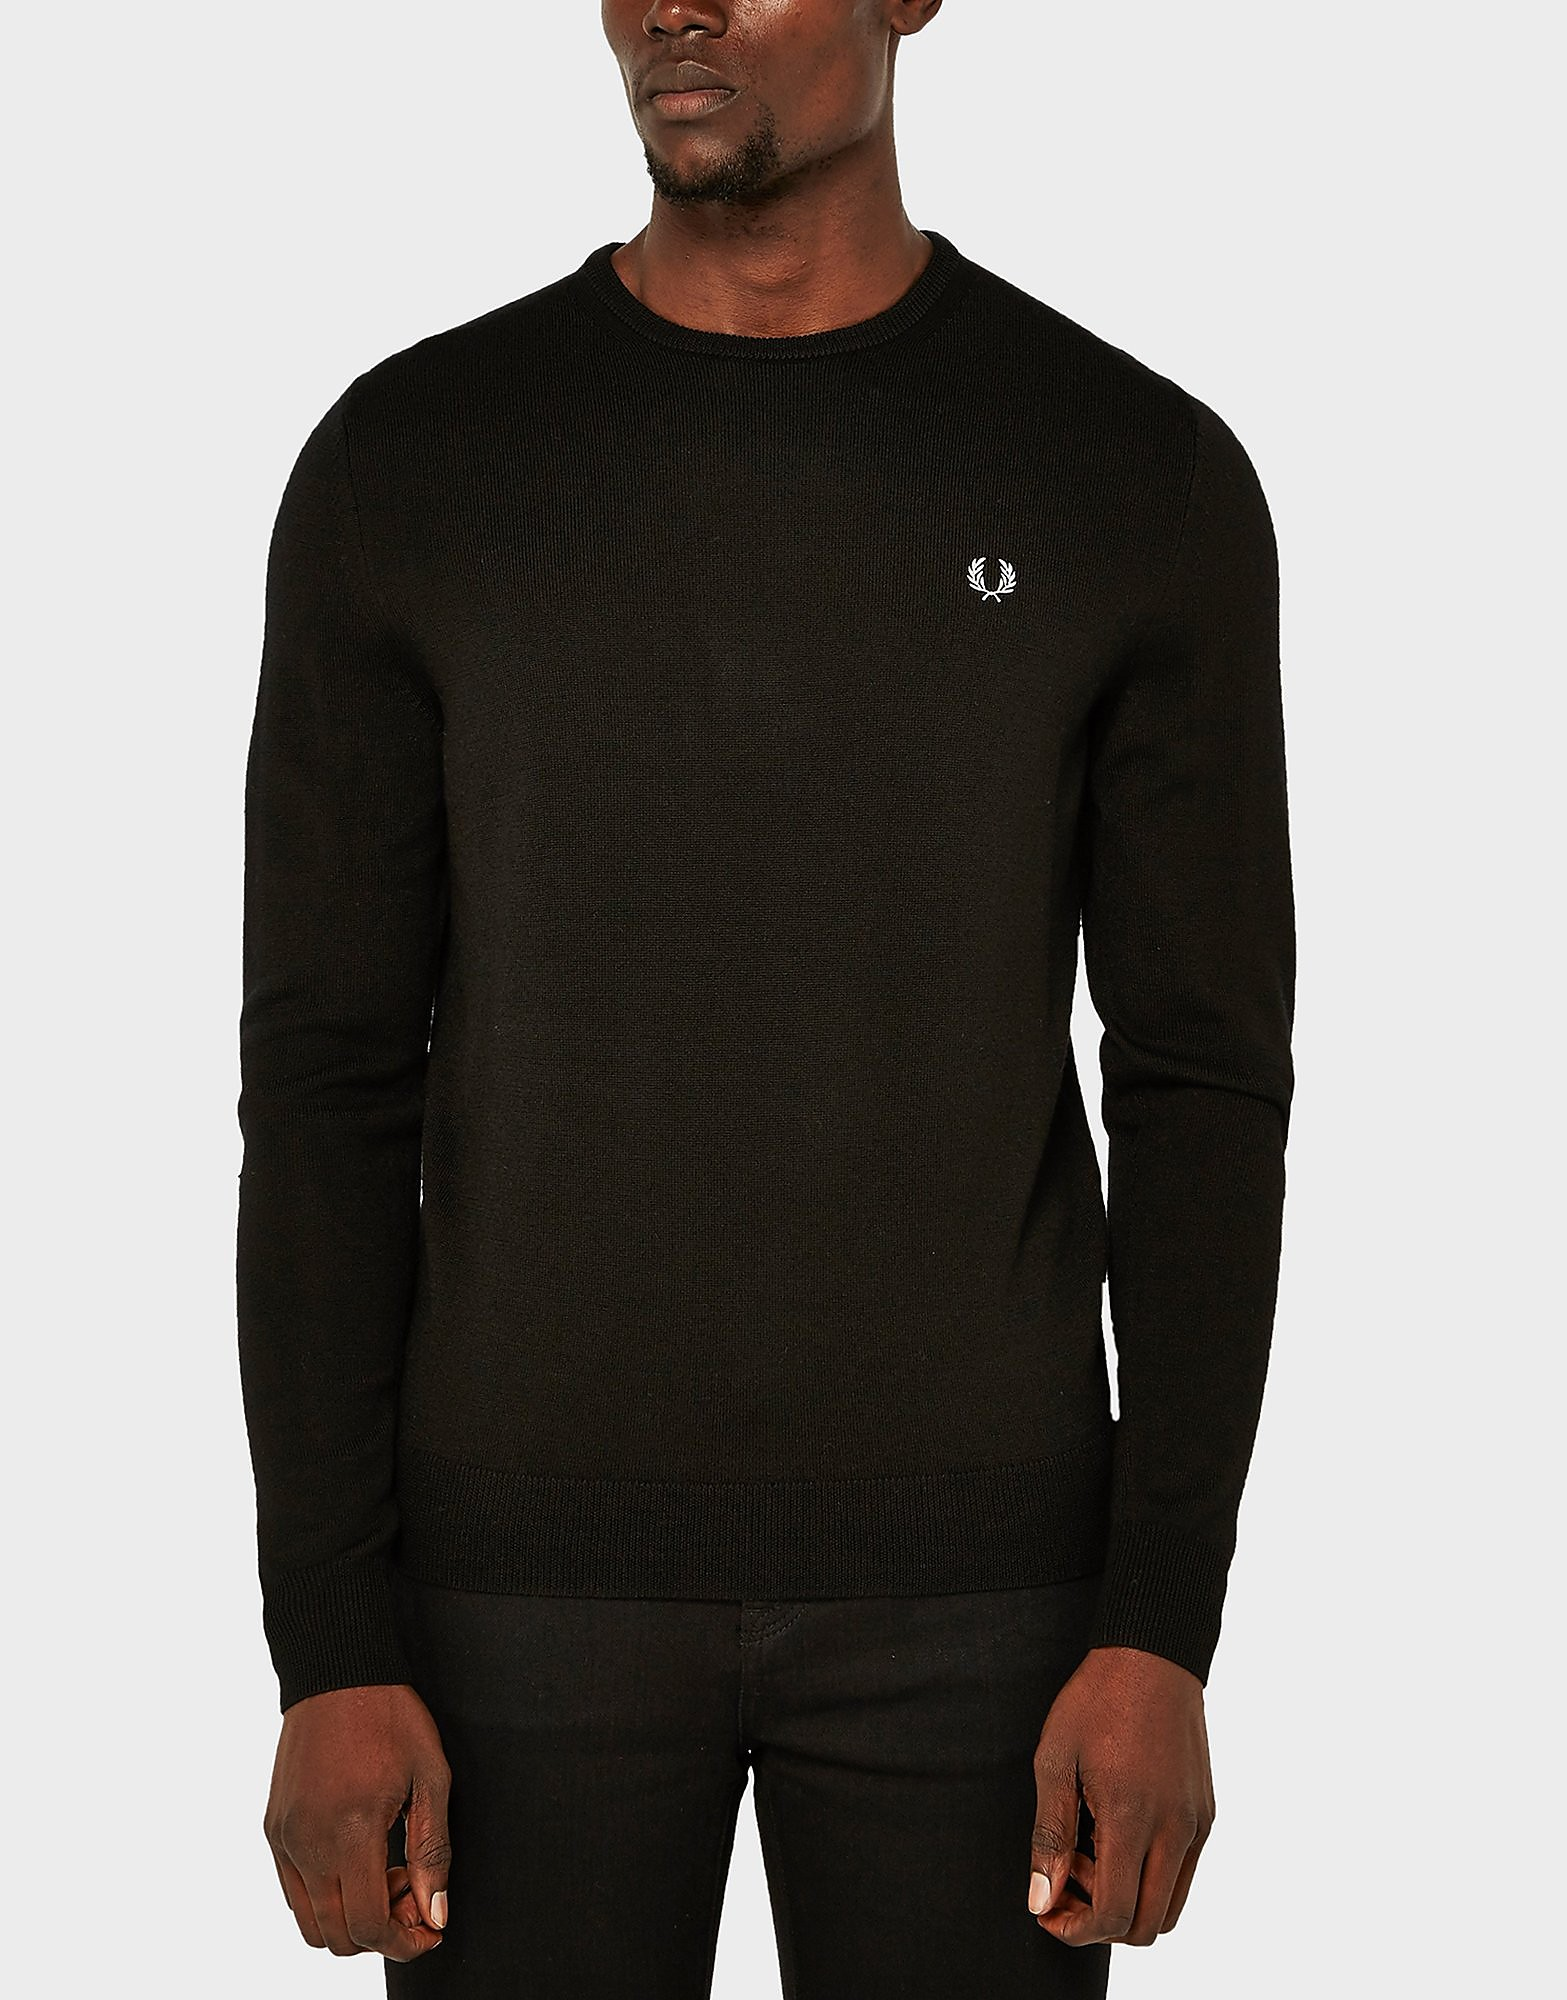 Fred Perry Merino Crew Neck Knit